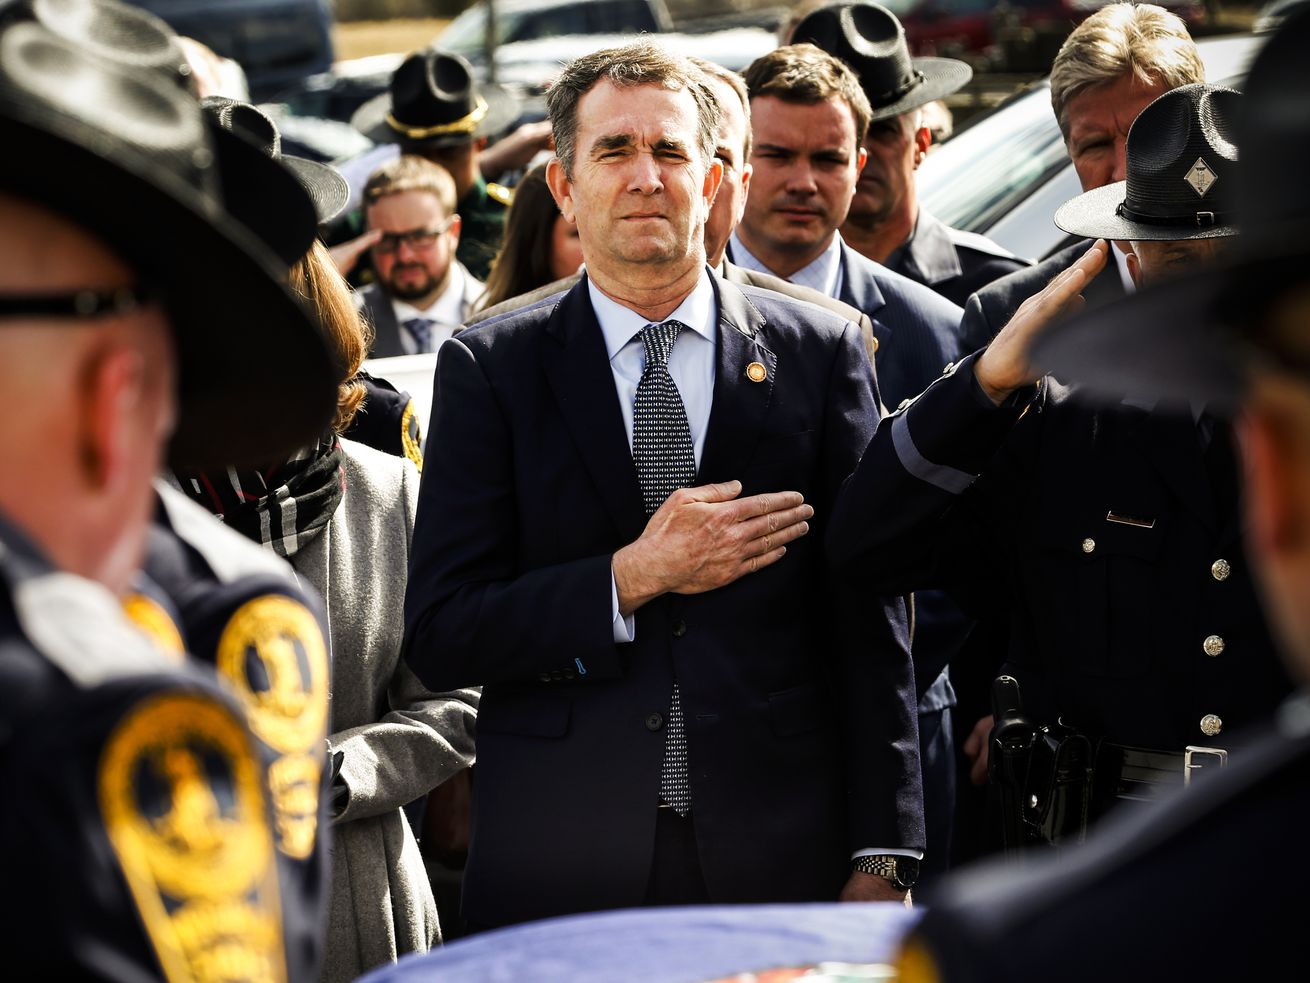 Virginia Gov. Ralph Northam seen during the funeral of Virginia State Trooper Lucas B. Dowell in Chilhowie, Virginia, on February 9, 2019.